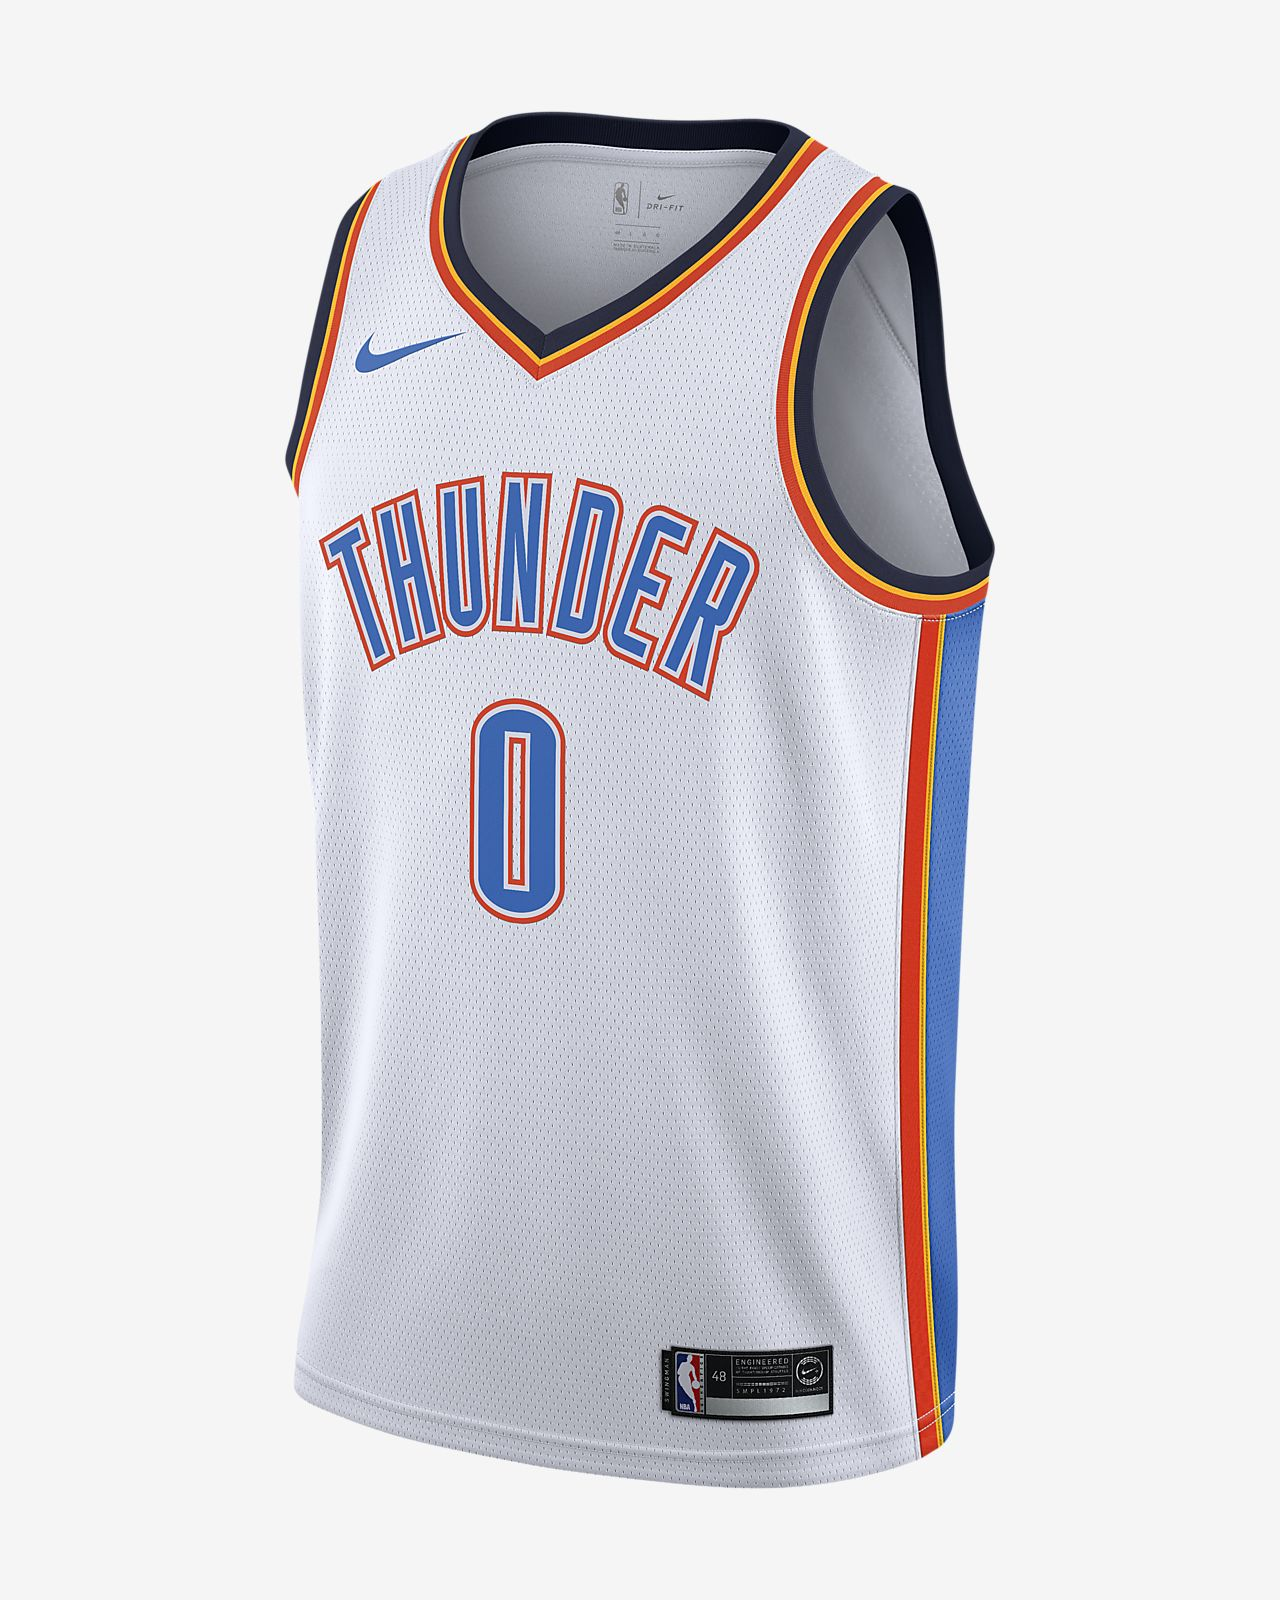 Russell Hombre Nba Nike Para Camiseta Conectada Westbrook qAxwFFXvE